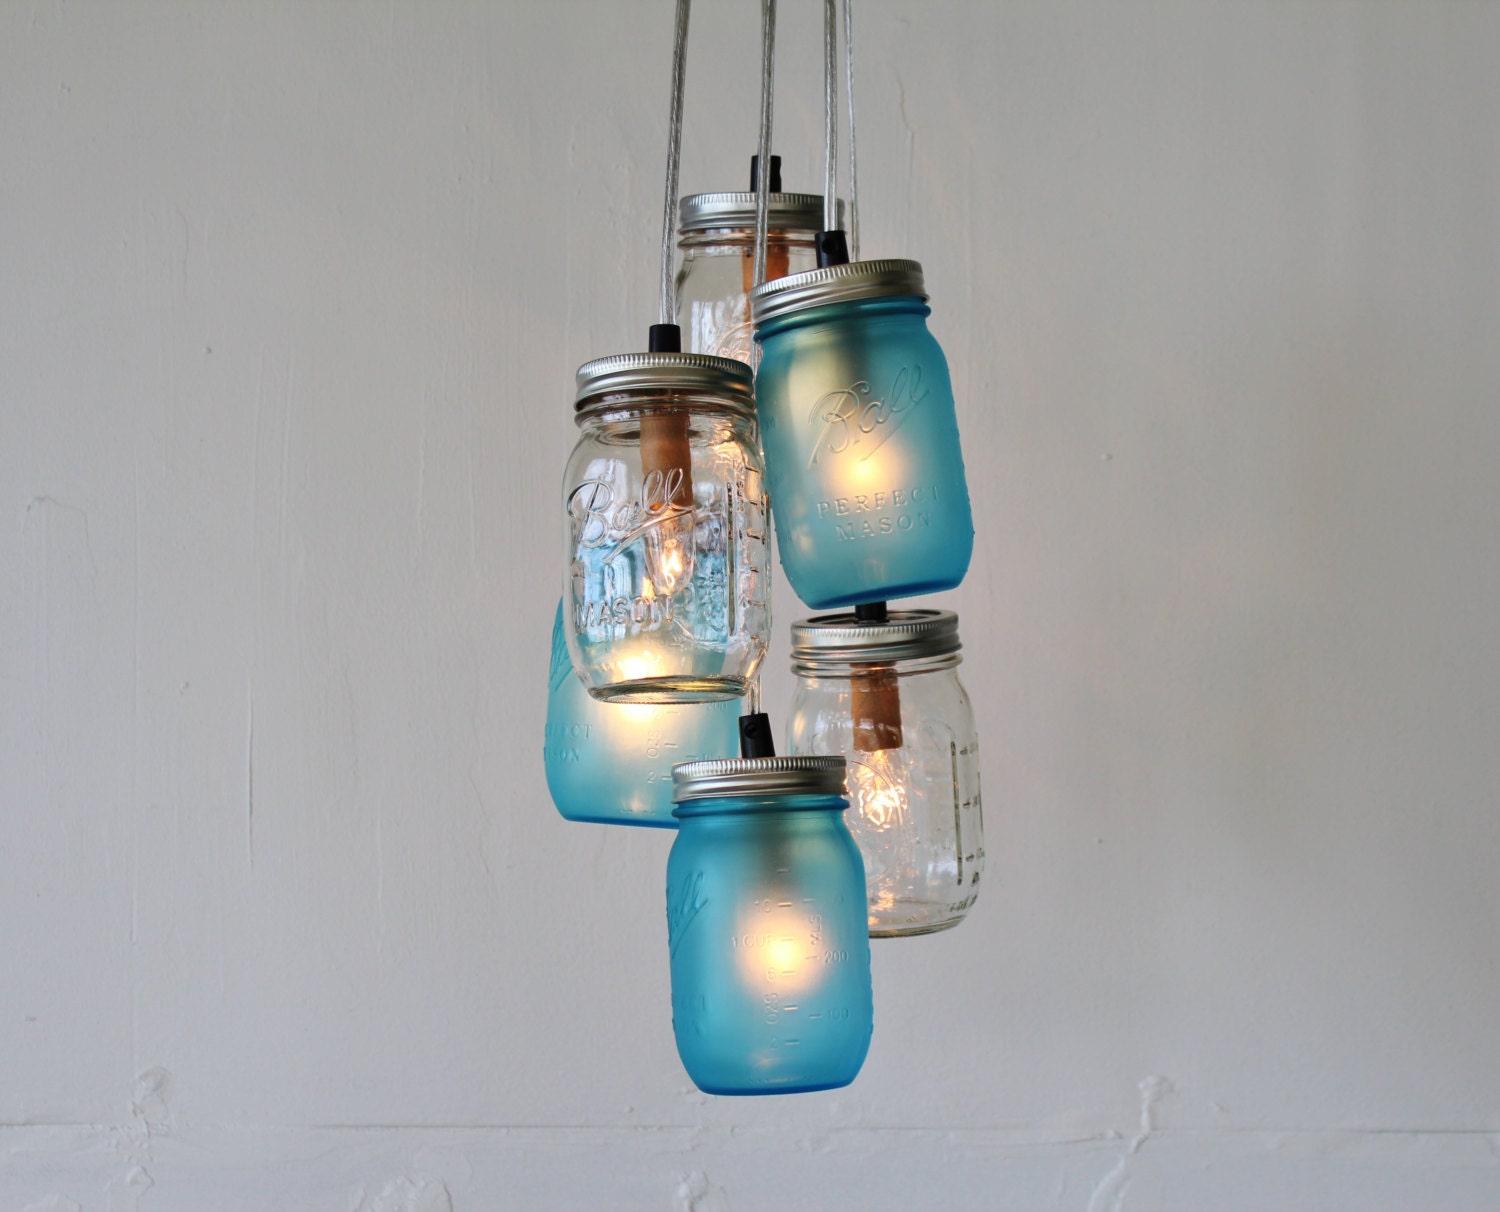 Lake Fog Mason Jar Chandelier Featuring 3 Frosted Blue & 3 Clear Jars - Direct Hardwire Hanging Lighting Fixture - BootsNGus Lamps - BootsNGus